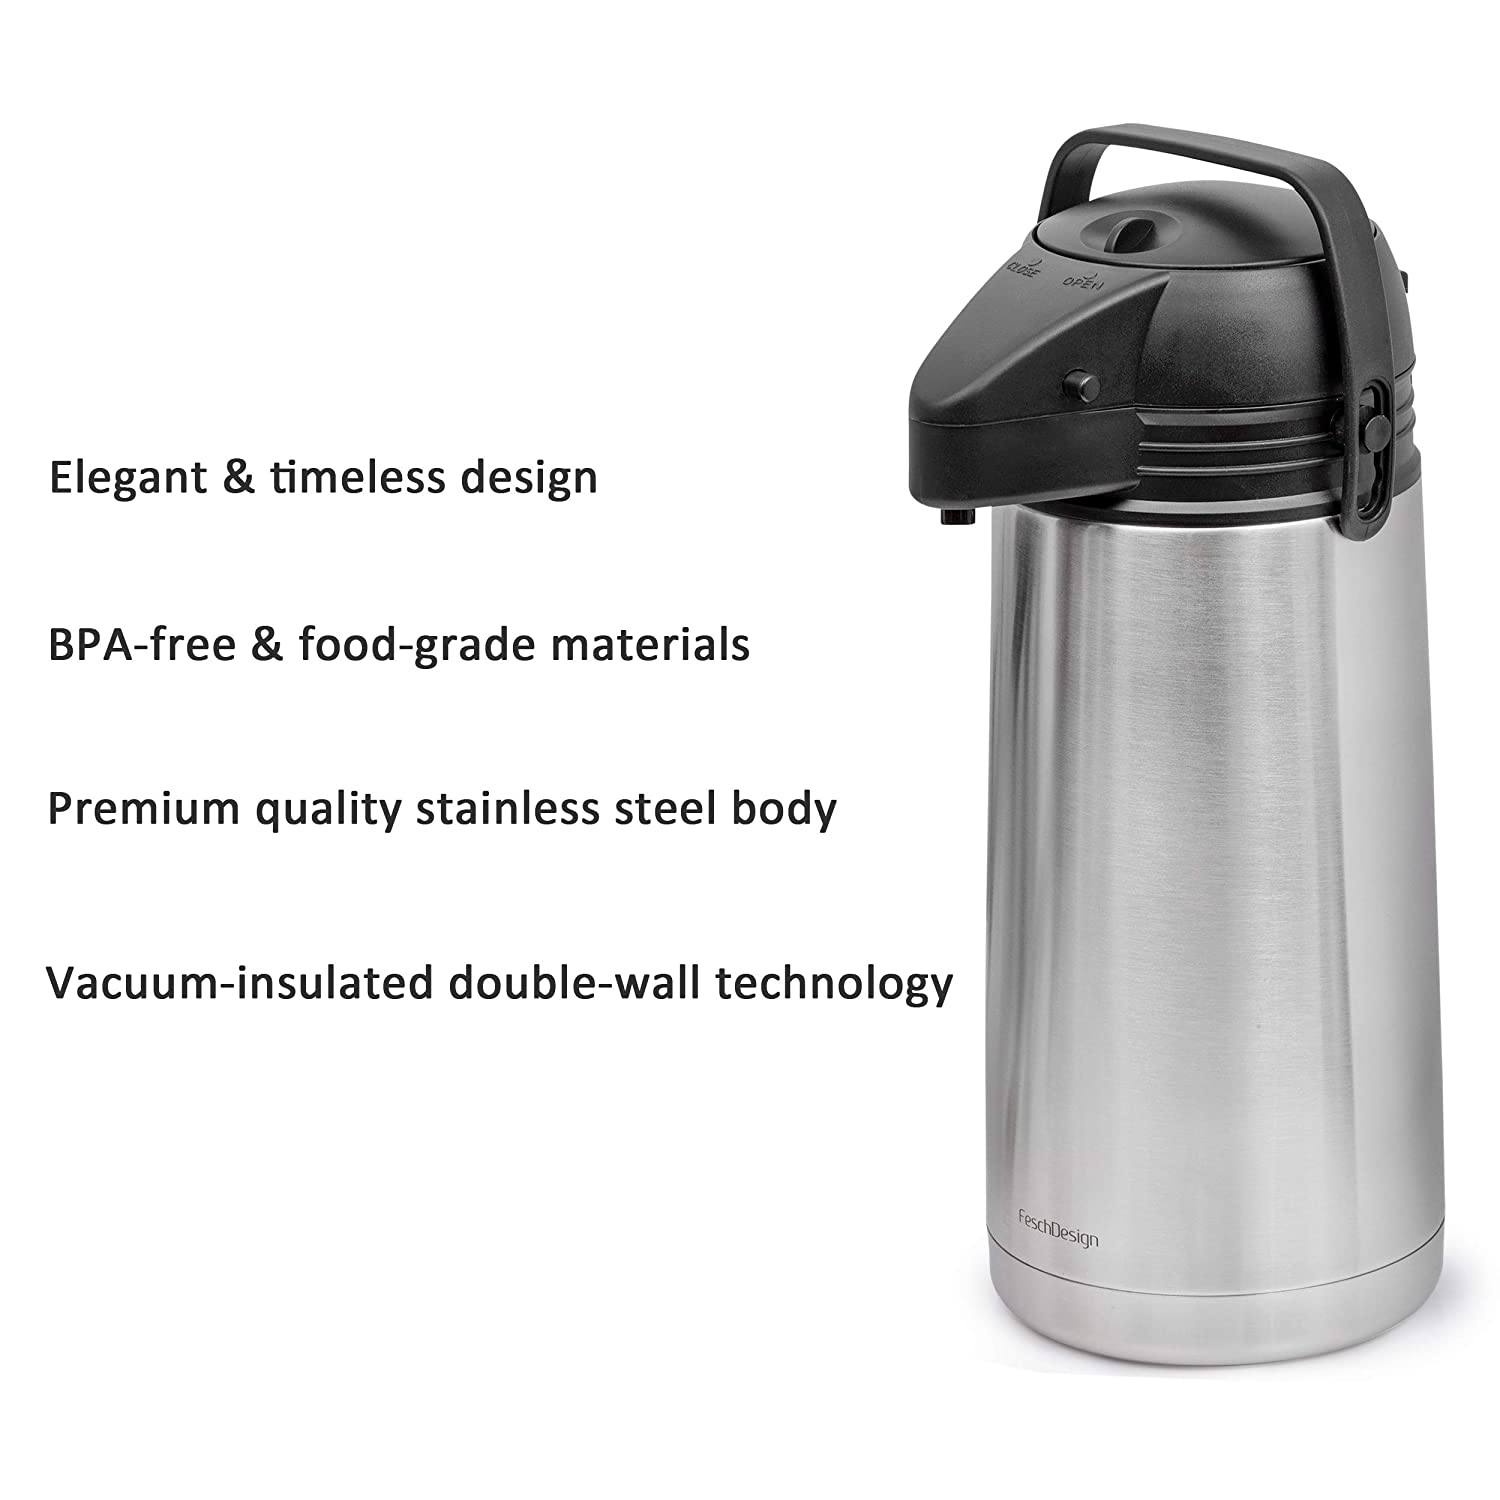 1.9 Liter New 64 Oz BPA-Free Vacuum Insulated Thermos Warm up to 12 Hrs Airpot Coffee Dispenser up to 24 Hrs Stainless Steel Double-Wall Carafe Effectively Keeps Beverages Hot or Cold